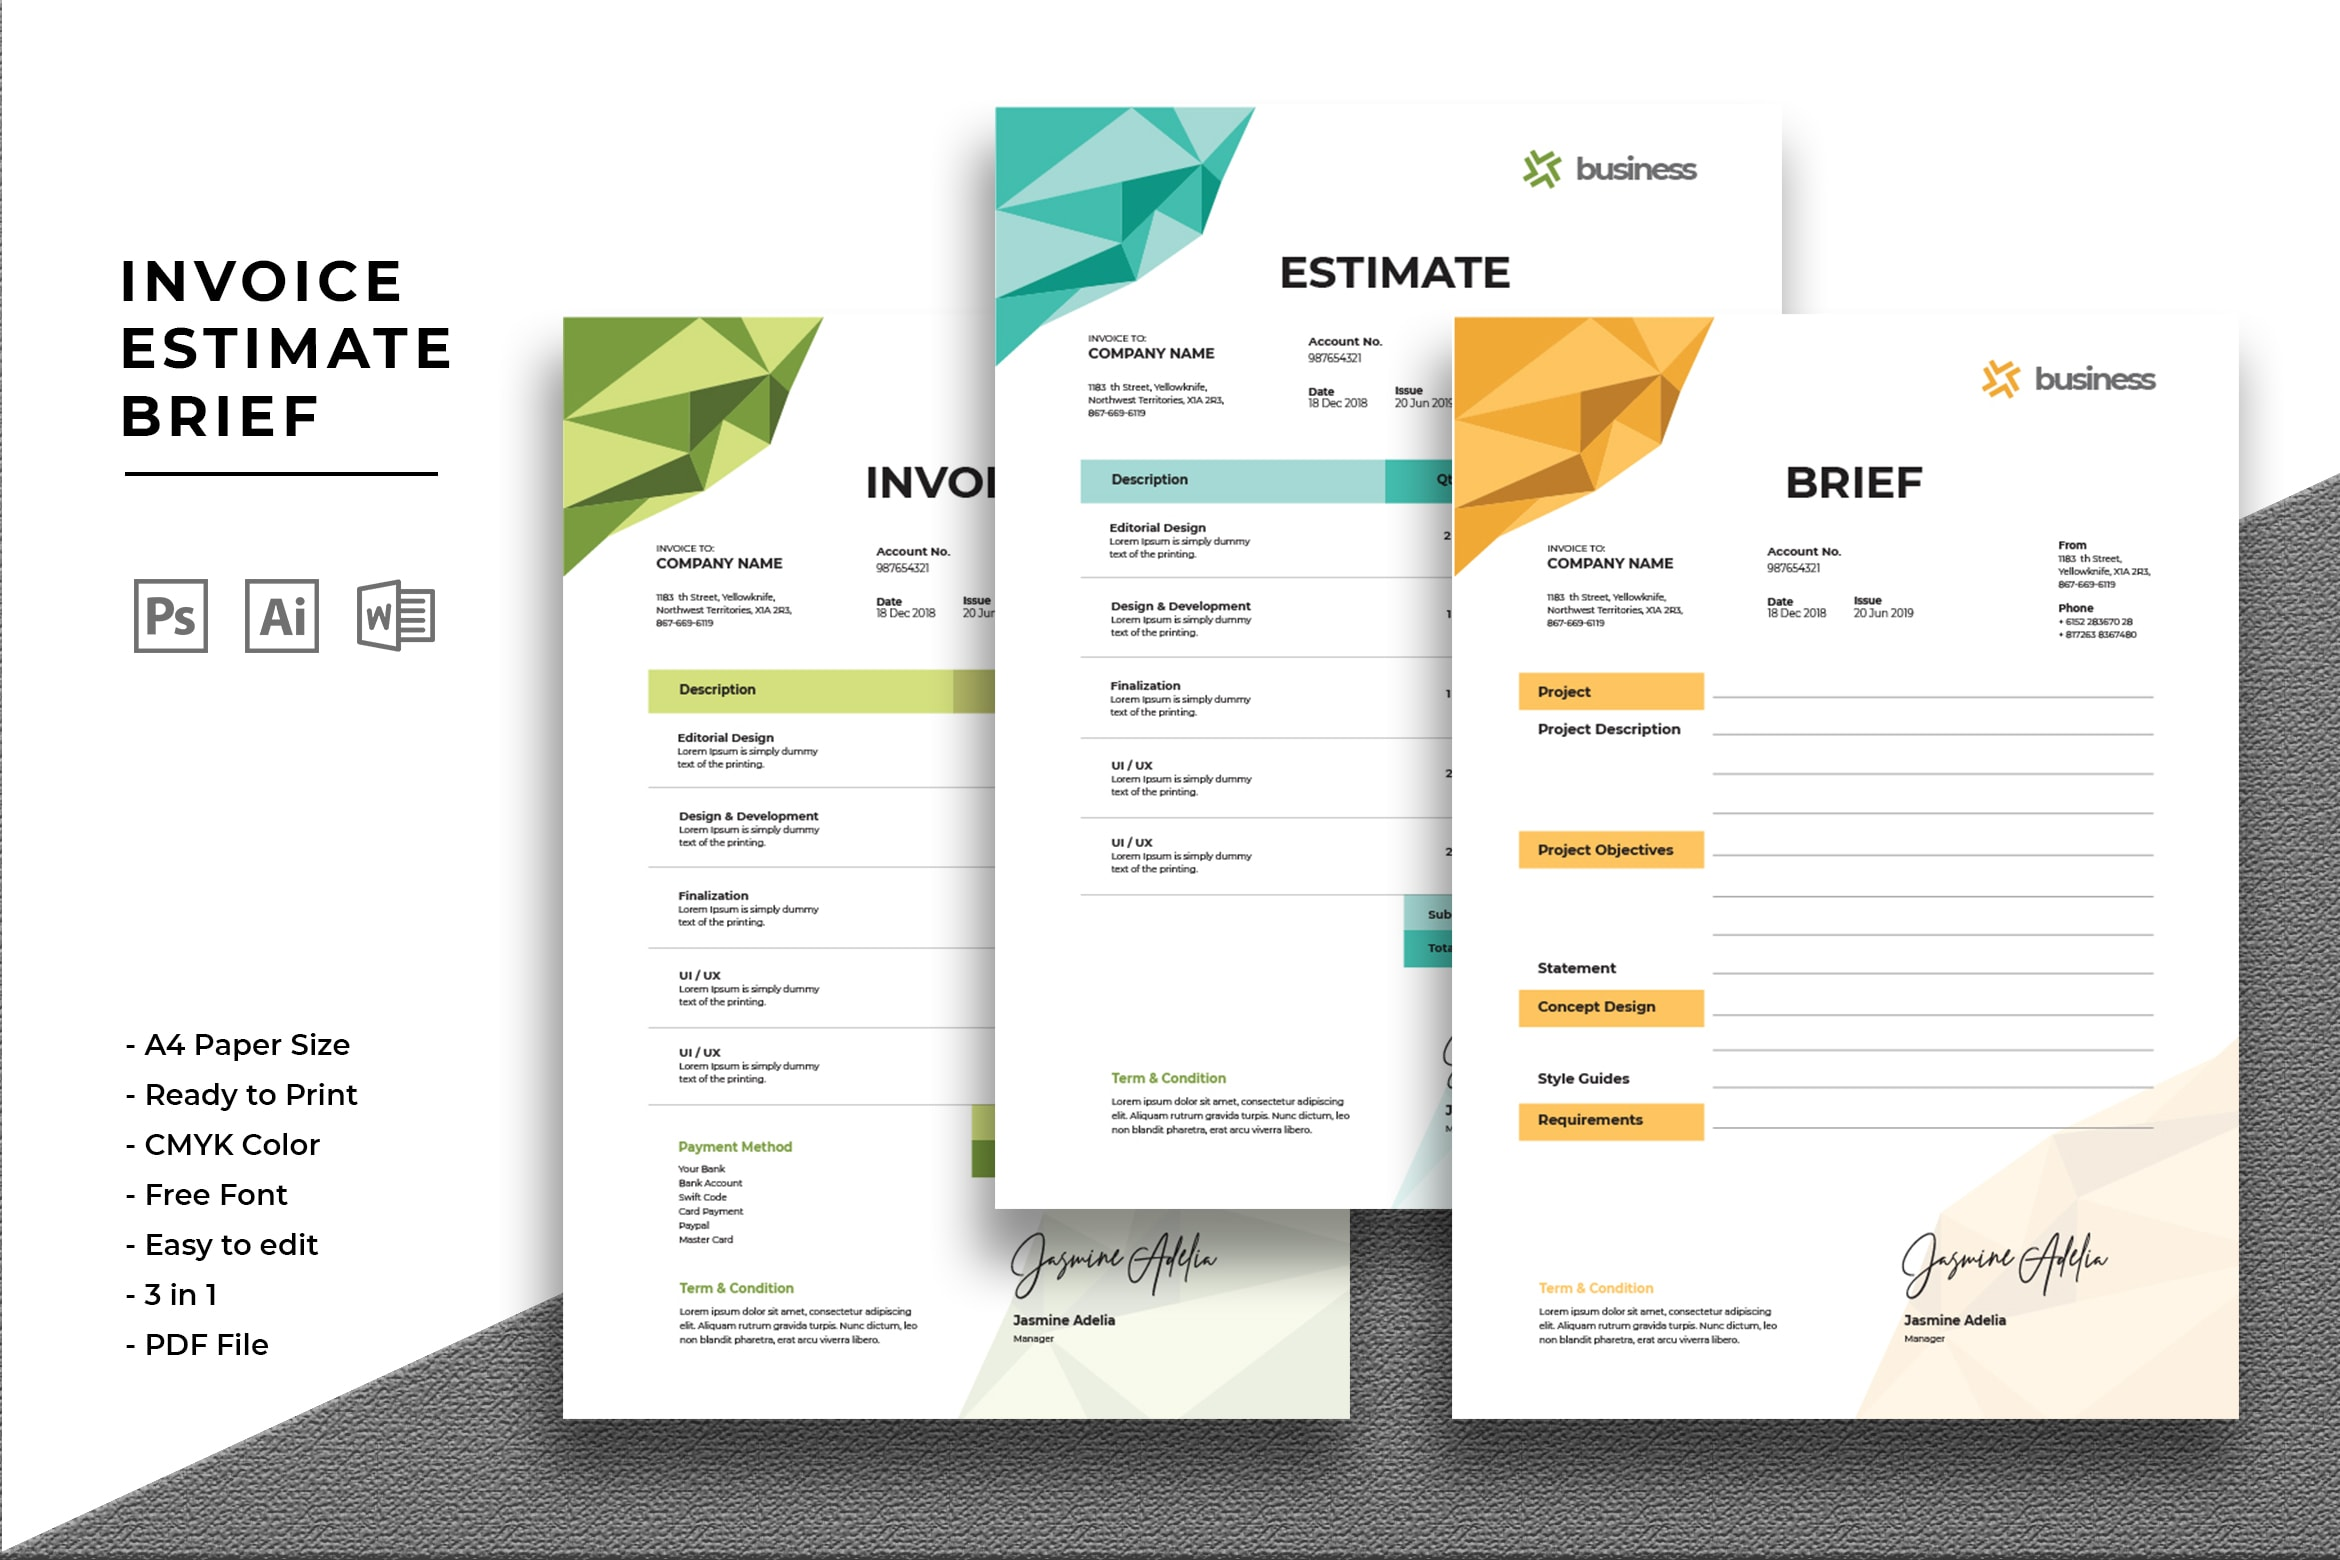 Invoice - Digital Business